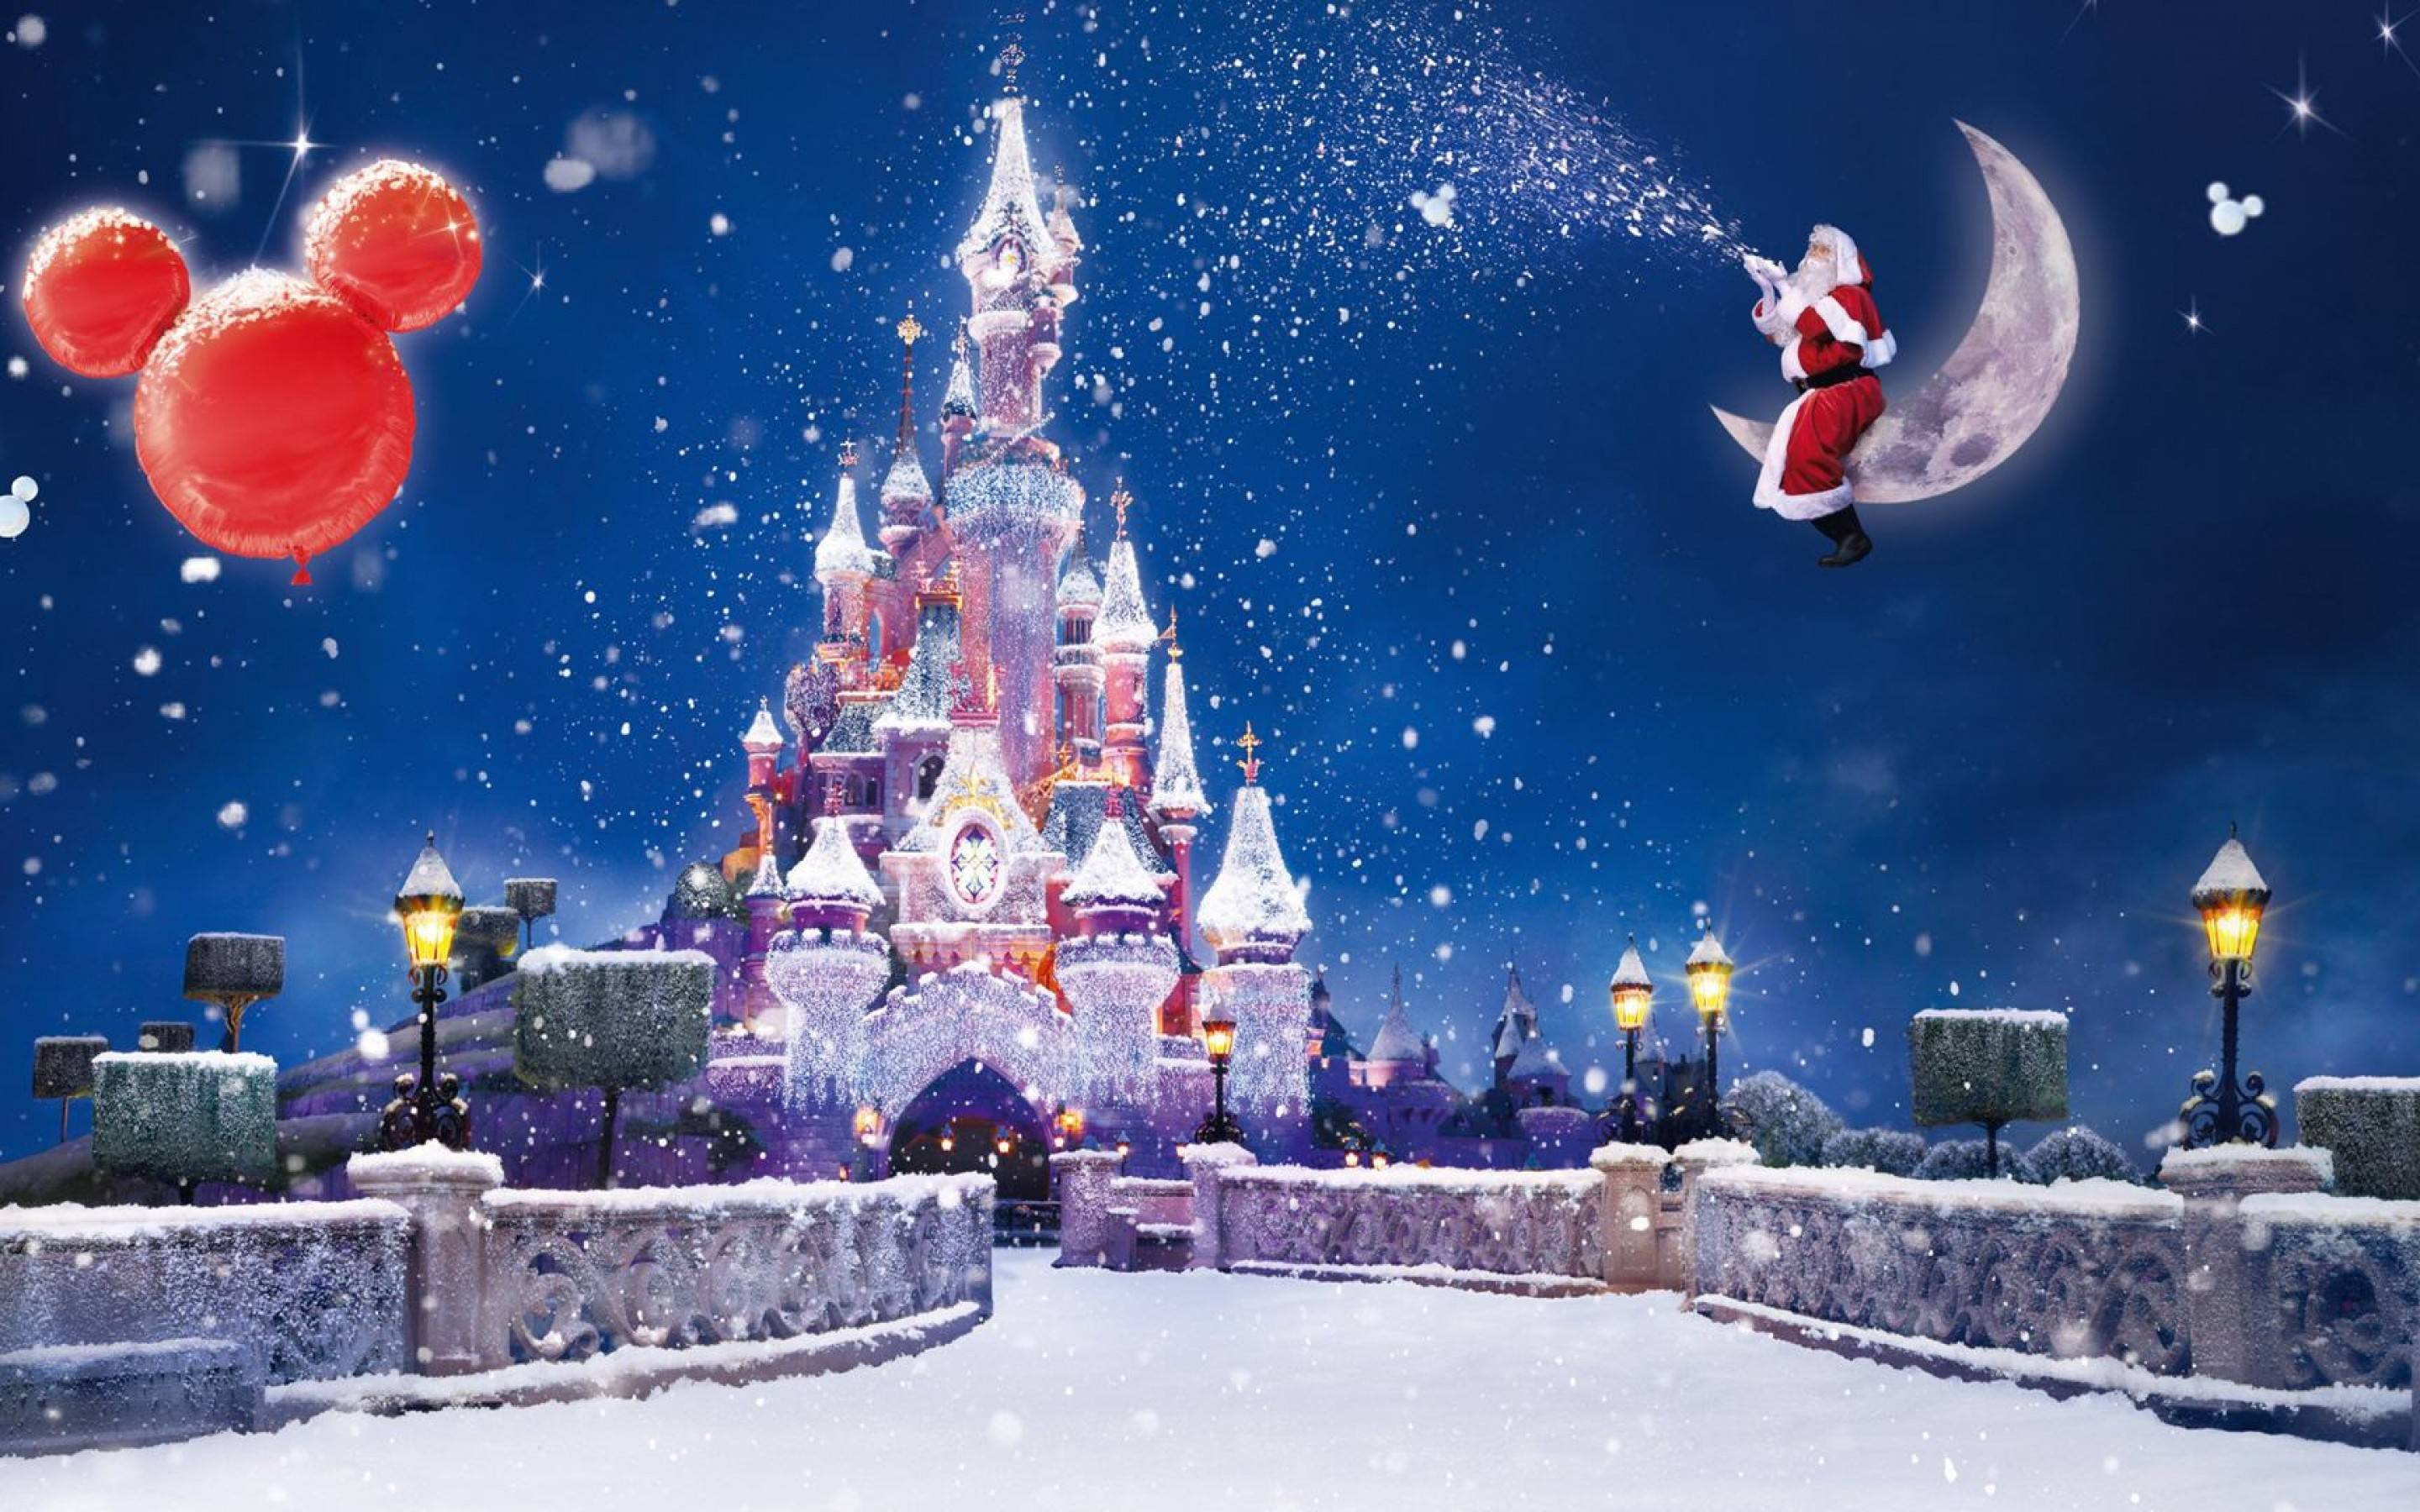 Disney Christmas Wallpapers HD 2880x1800